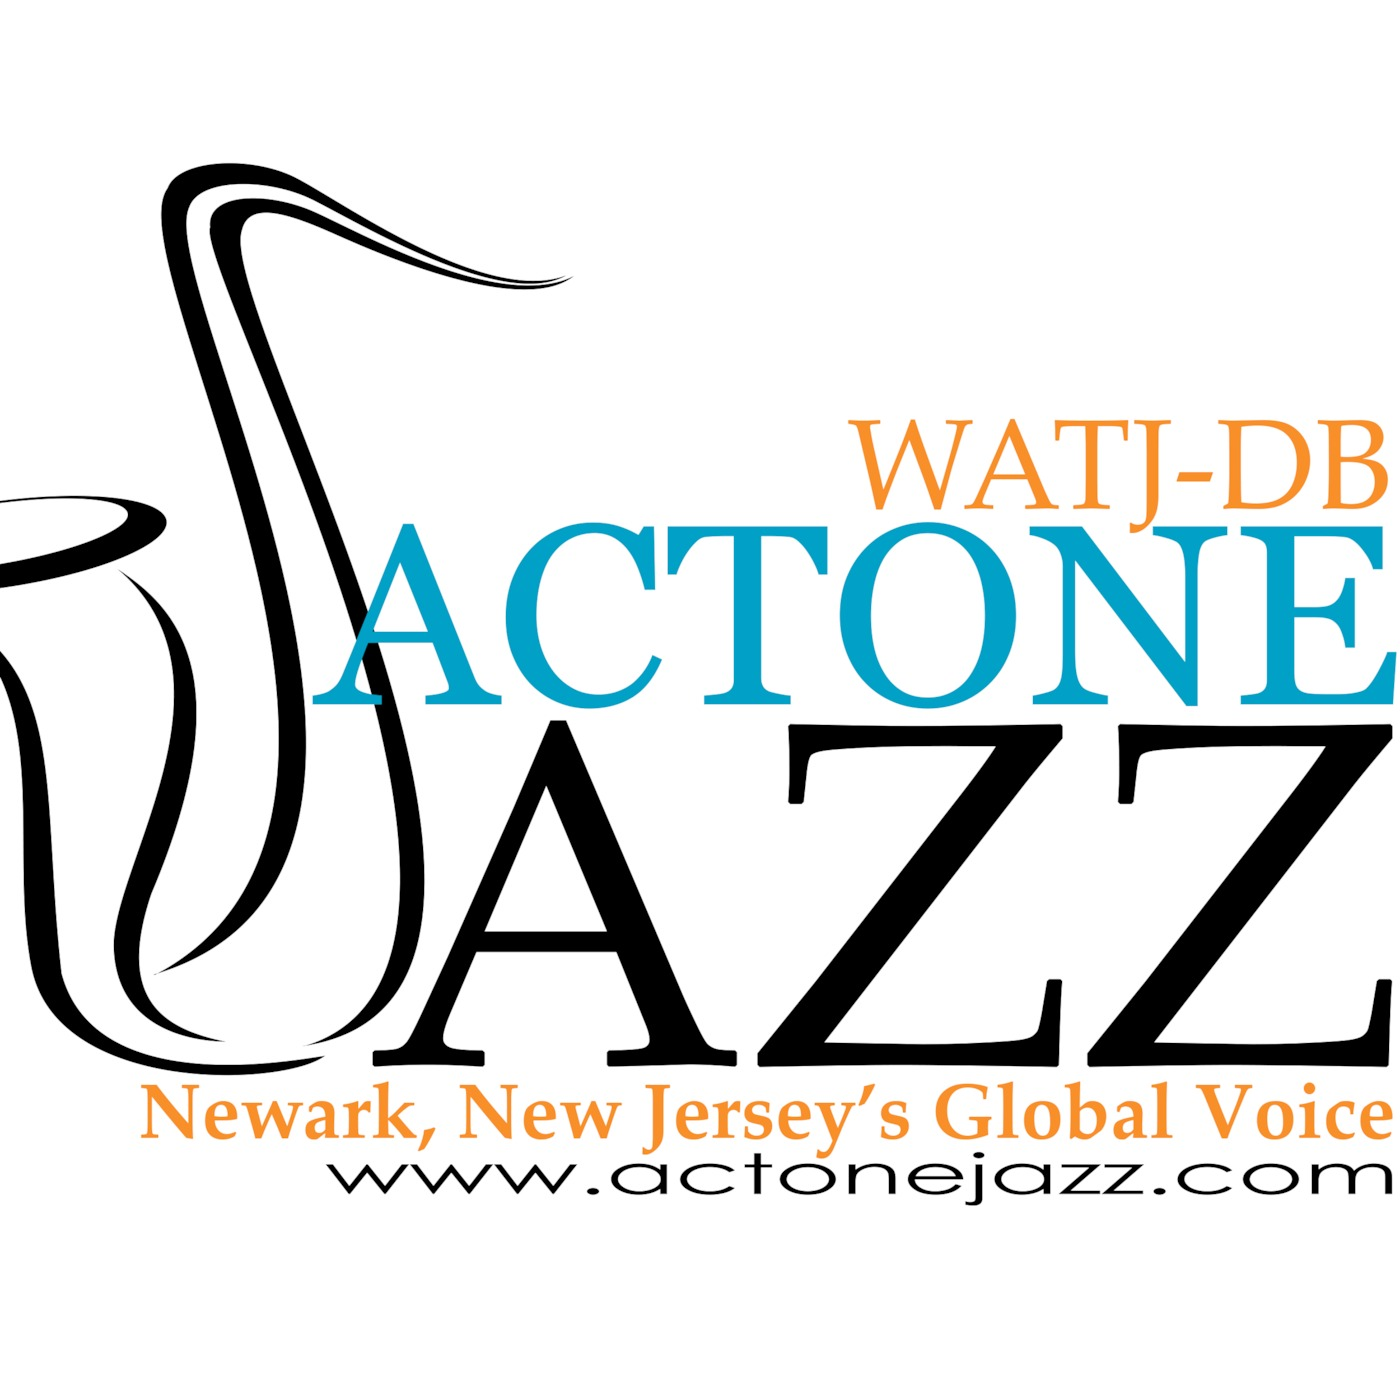 WATJ-DB Actone Jazz